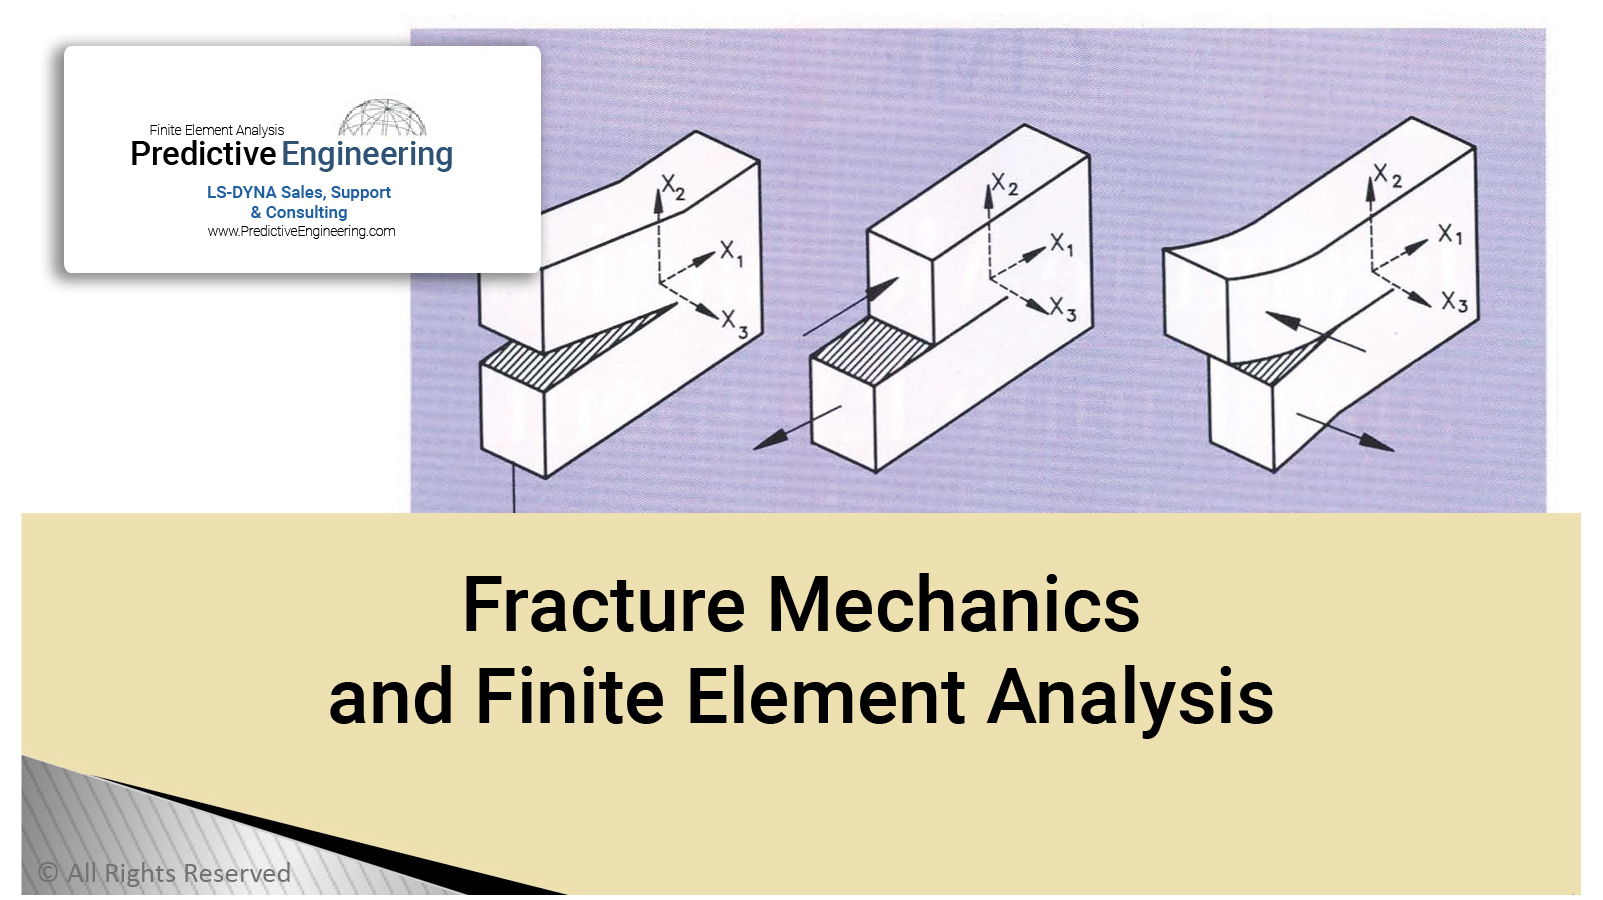 Fracture Mechanics and Finite Element Analysis Image